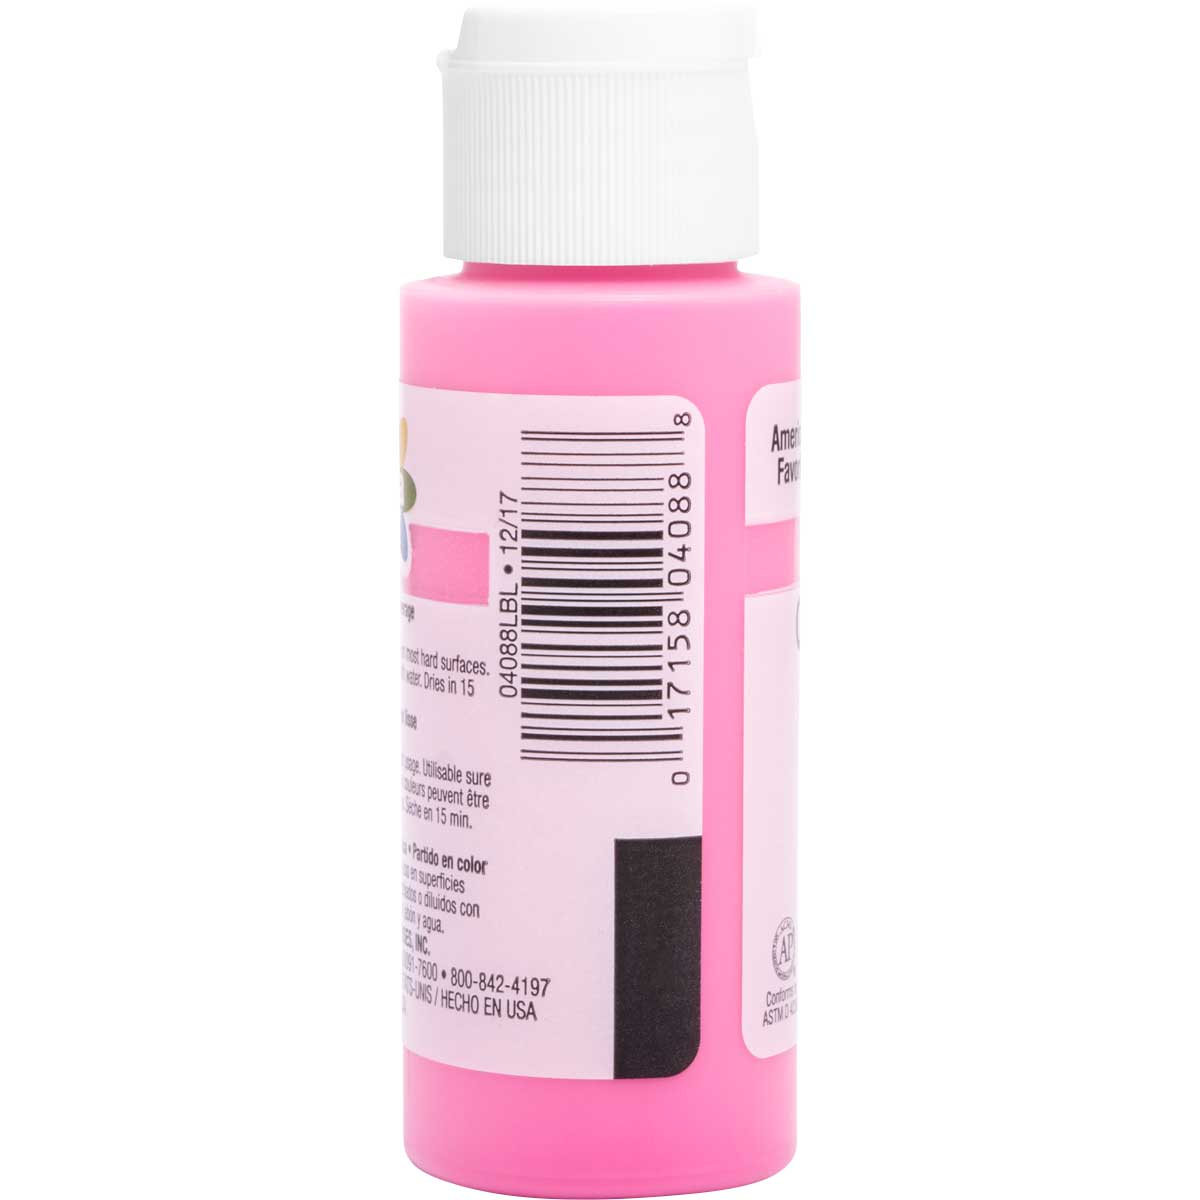 Delta Ceramcoat ® Acrylic Paint - Chic Pink, 2 oz. - 04088